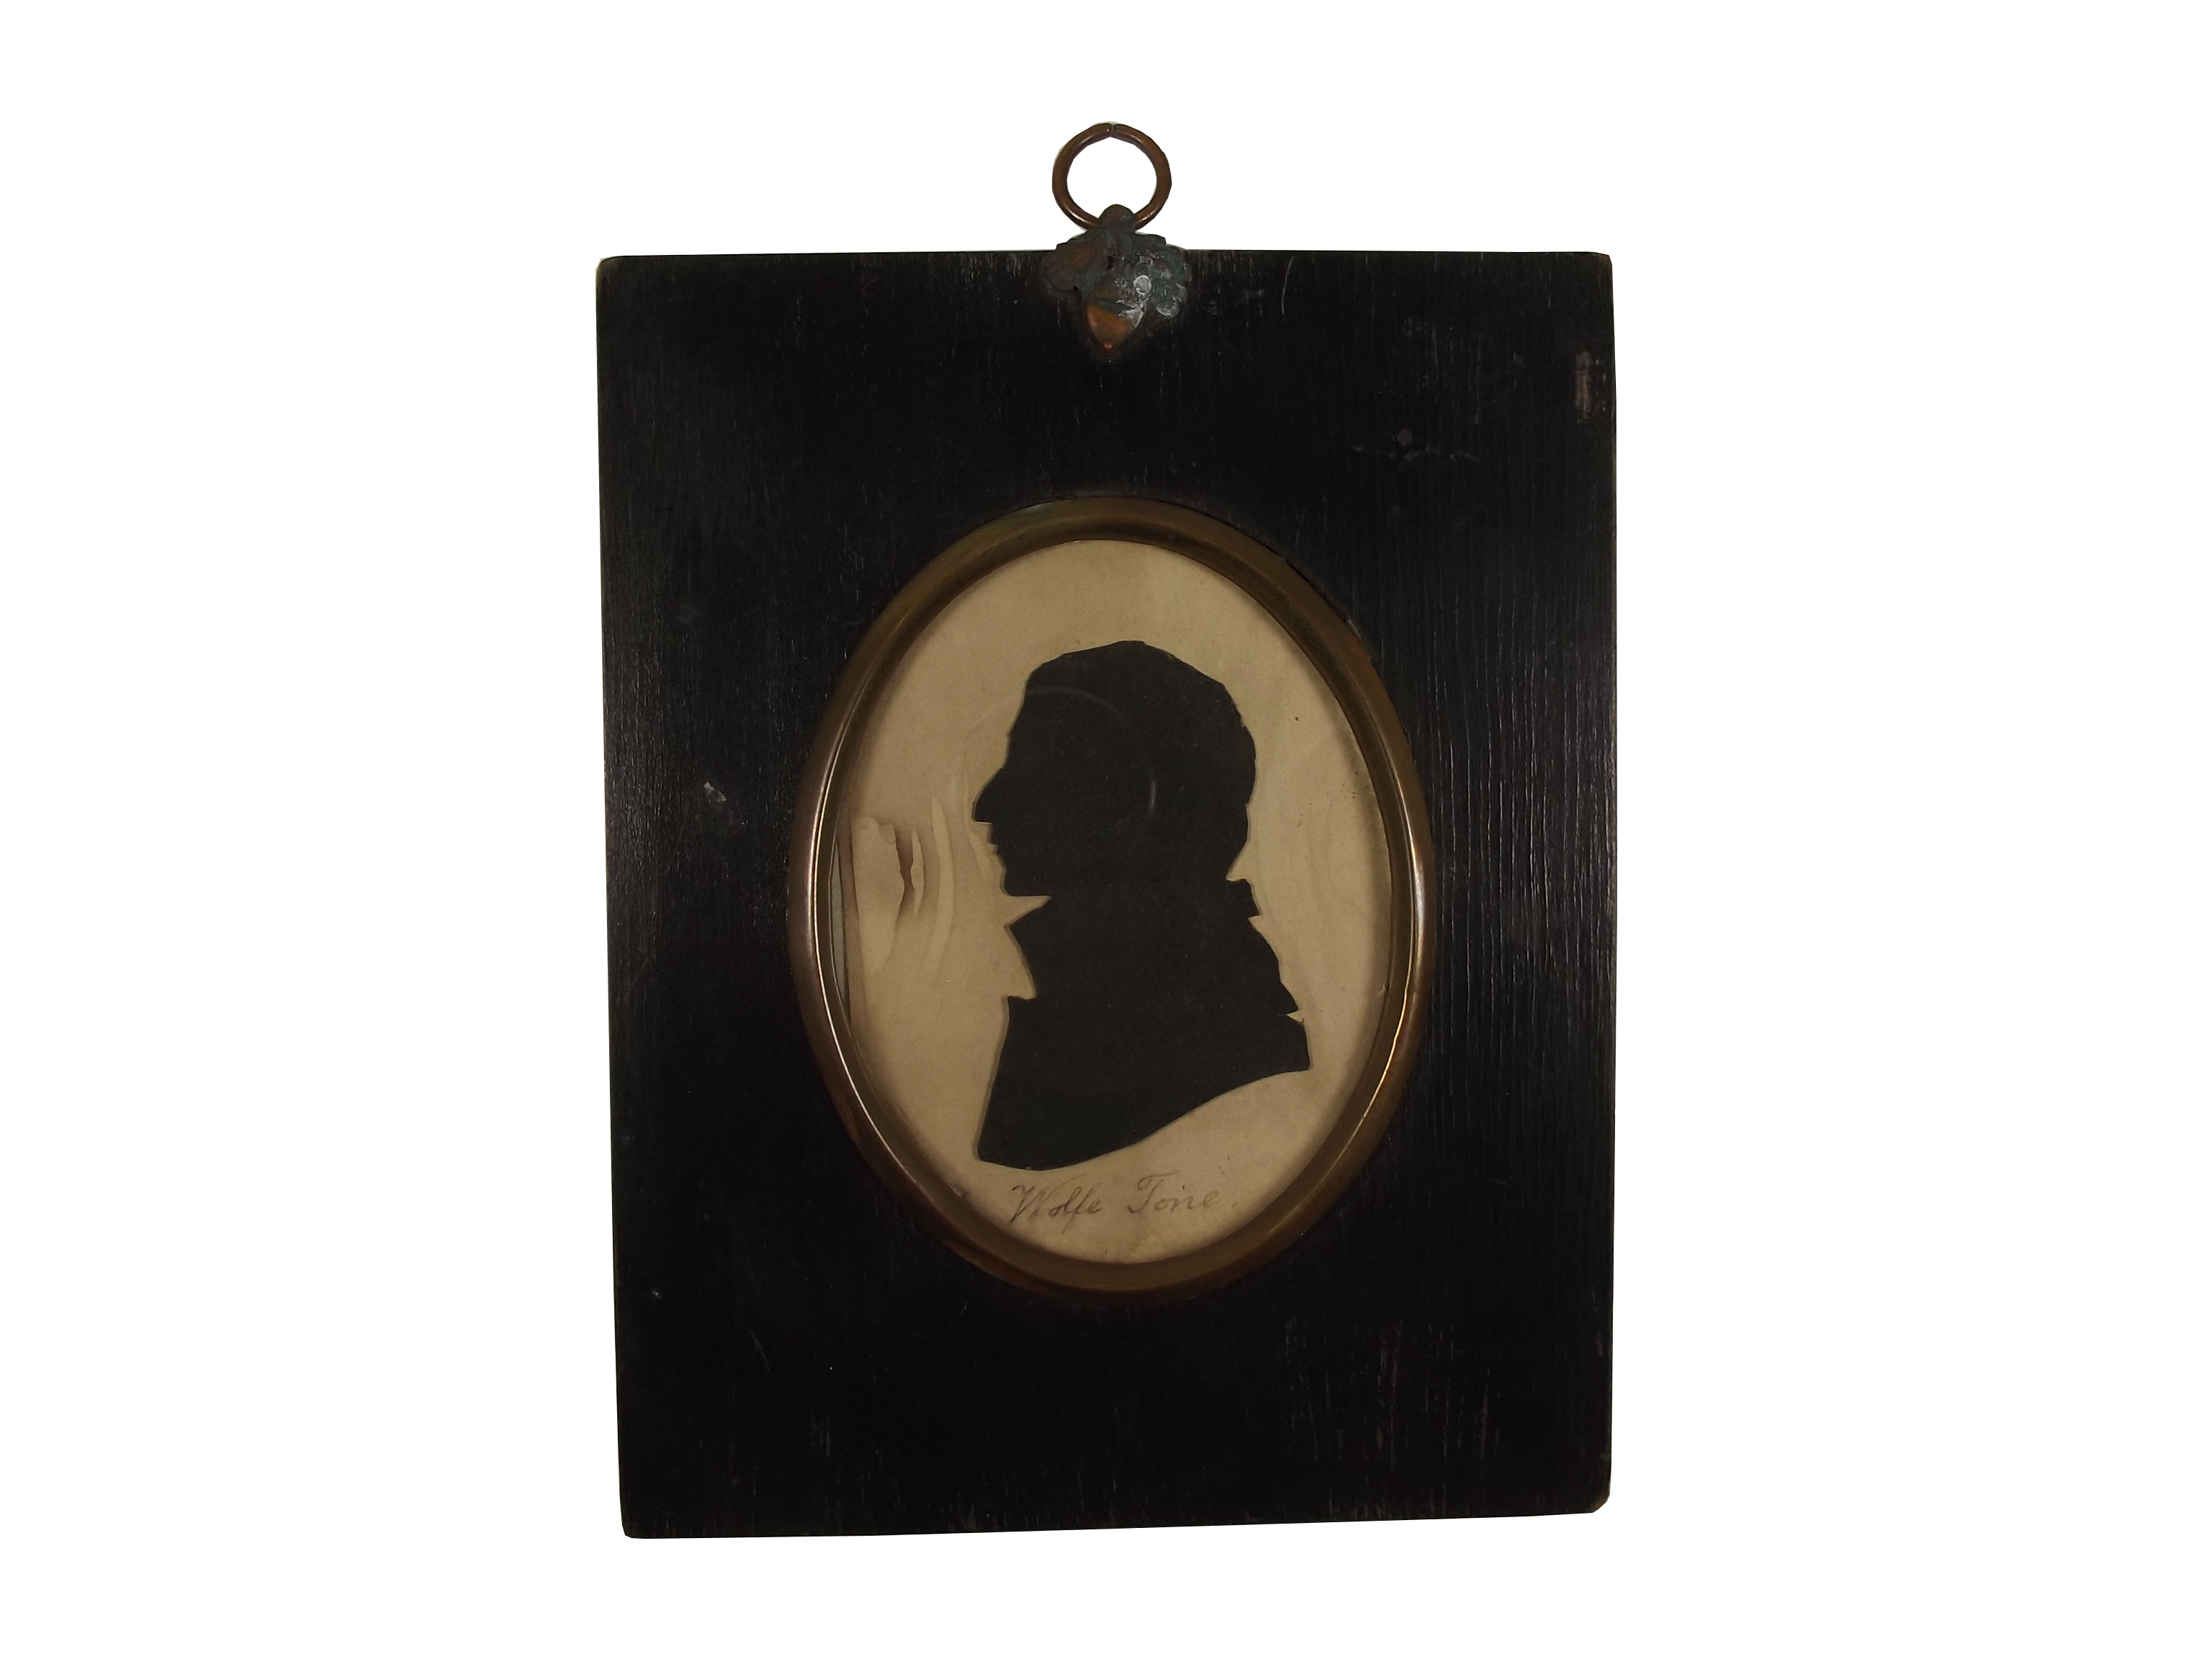 Wolfe Tone silhouette